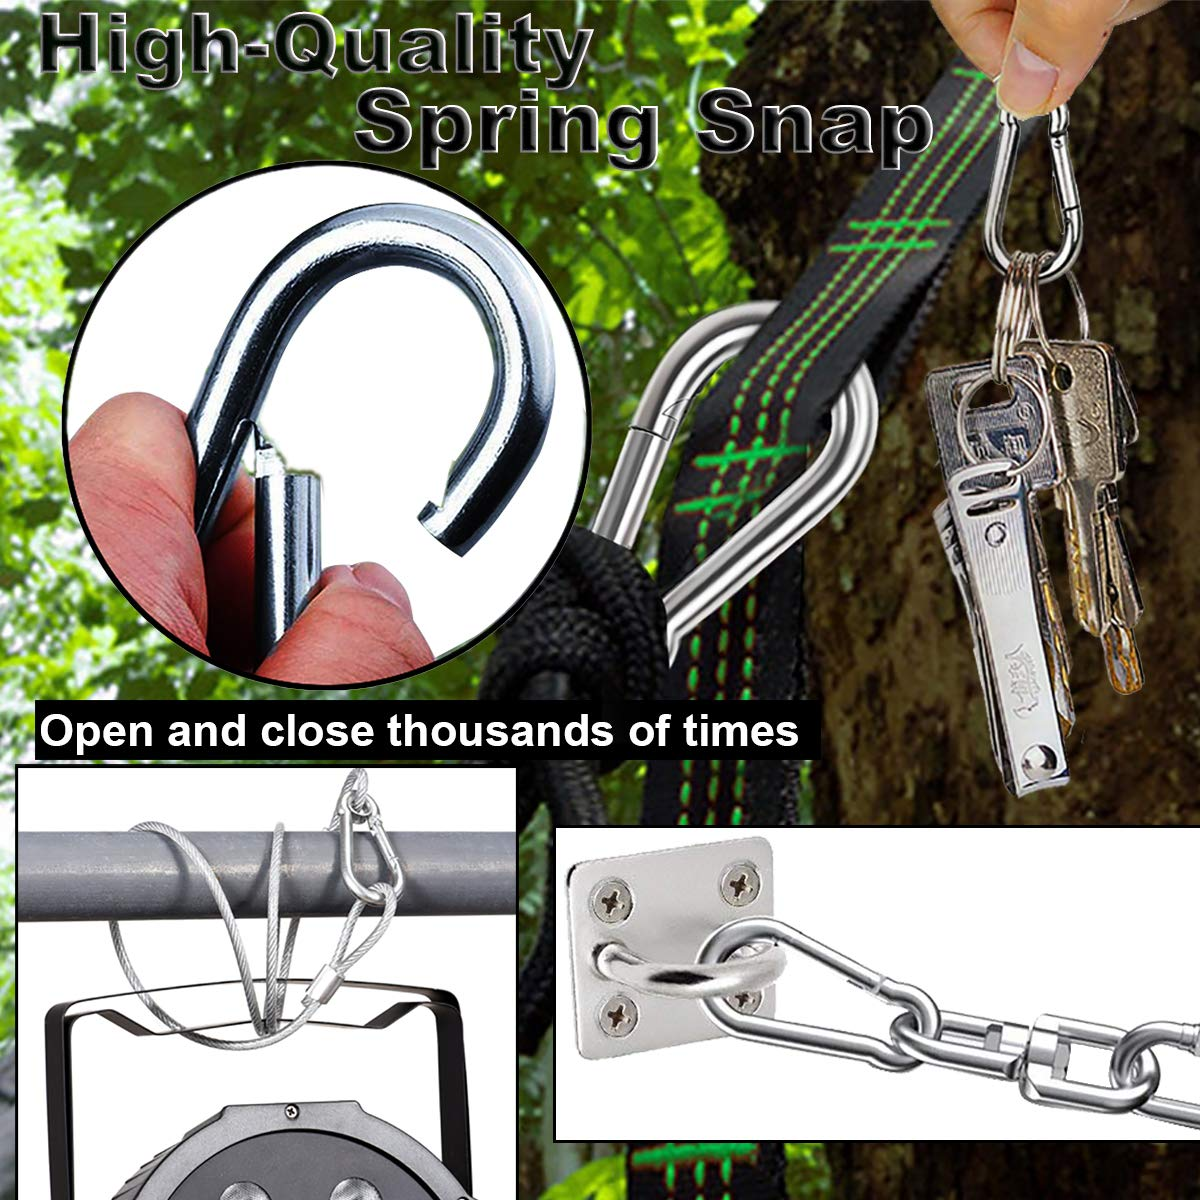 30, 2.36 inch Spring Snap Hook Lsquirrel 304 Stainless Steel Carabiner Steel Clips Keychain Heavy Duty Quick Link for Camping Hiking Traveling Fishing